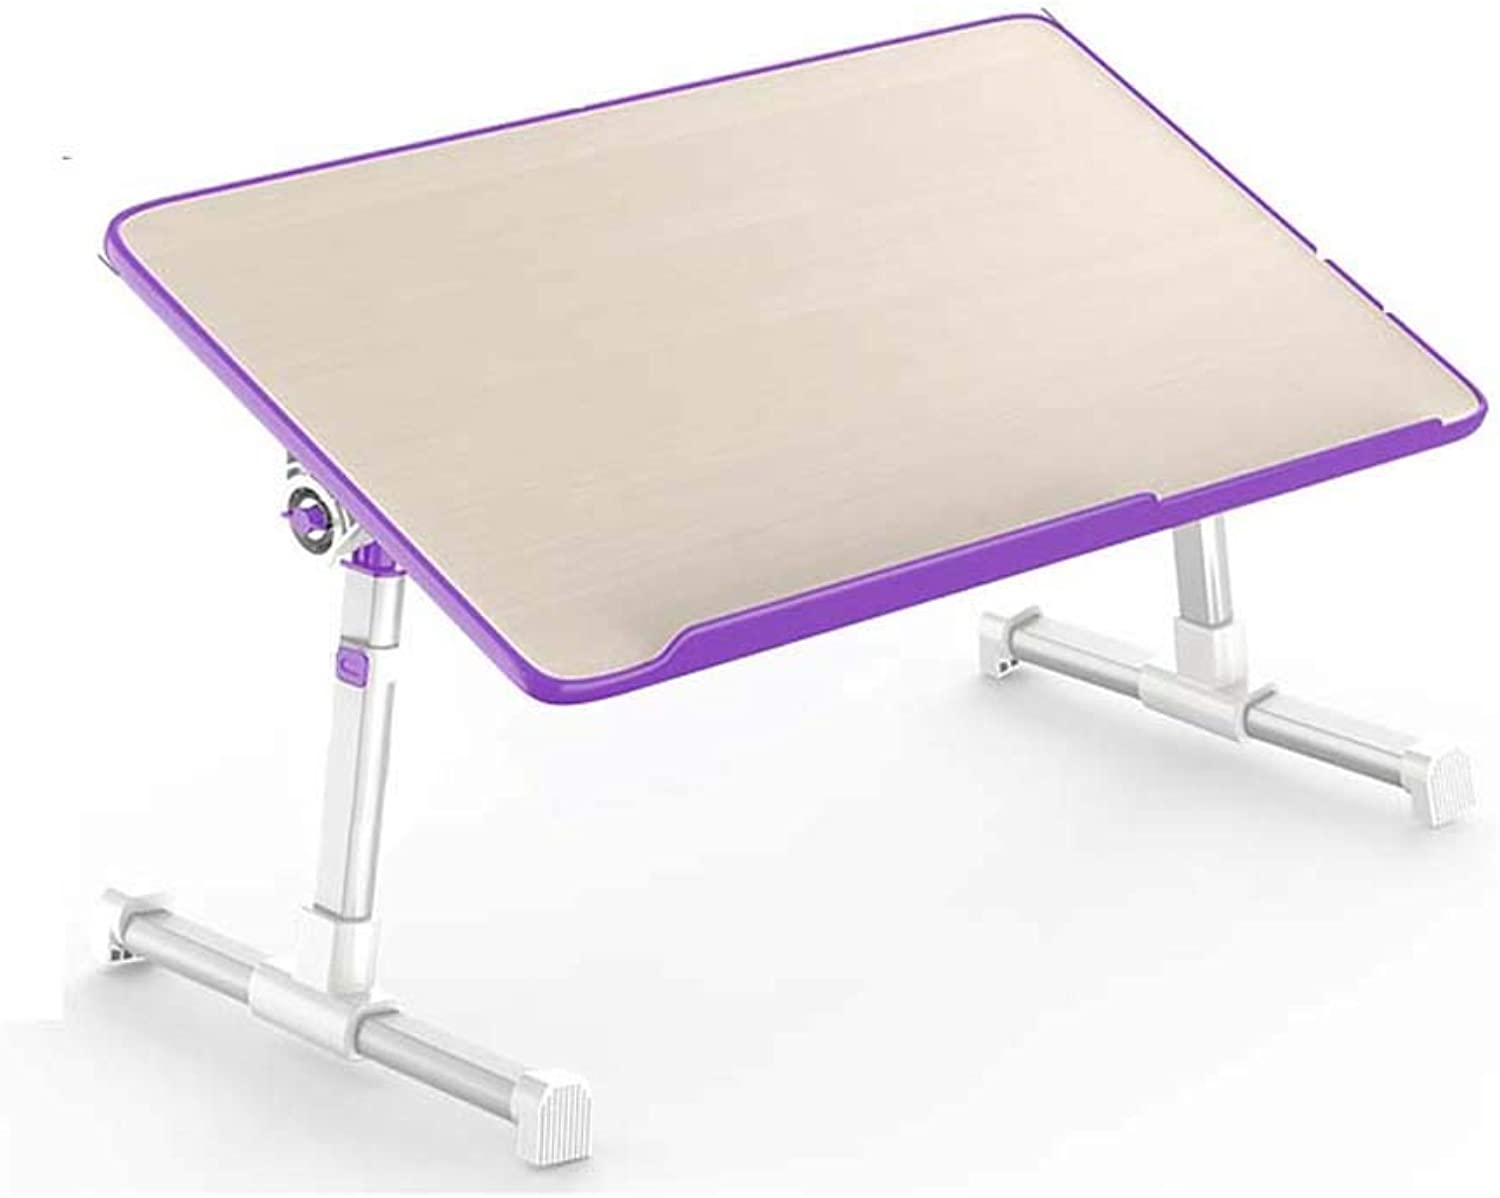 Yhz@ Simple Laptop Desk, Bed Foldable Dormitory Home Desk Student Bedroom Lazy Small Table - Wood-Based Panel - Angle Adjustment - Four Height